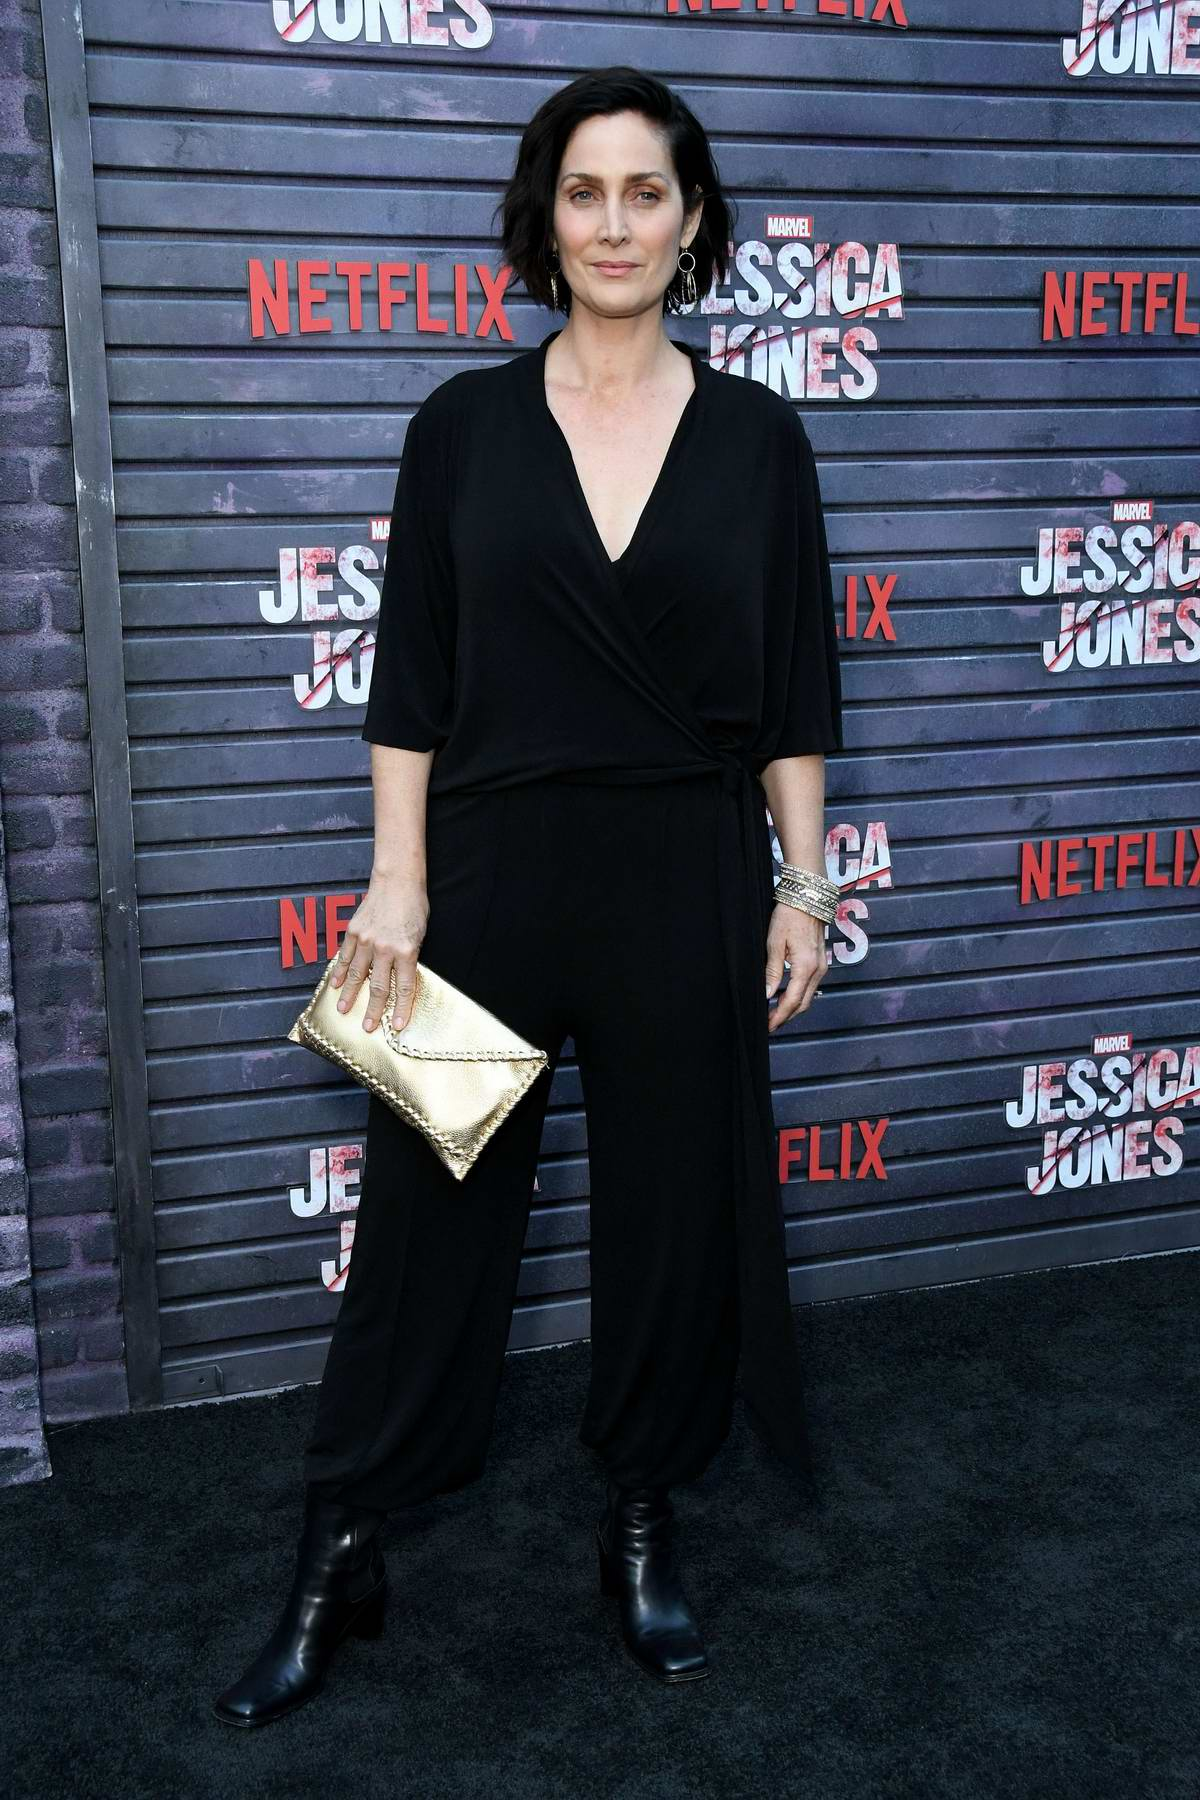 Carrie-Anne Moss attends the Special Screening of Netflix's 'Jessica Jones' Season 3 held at Arclight Hollywood, California